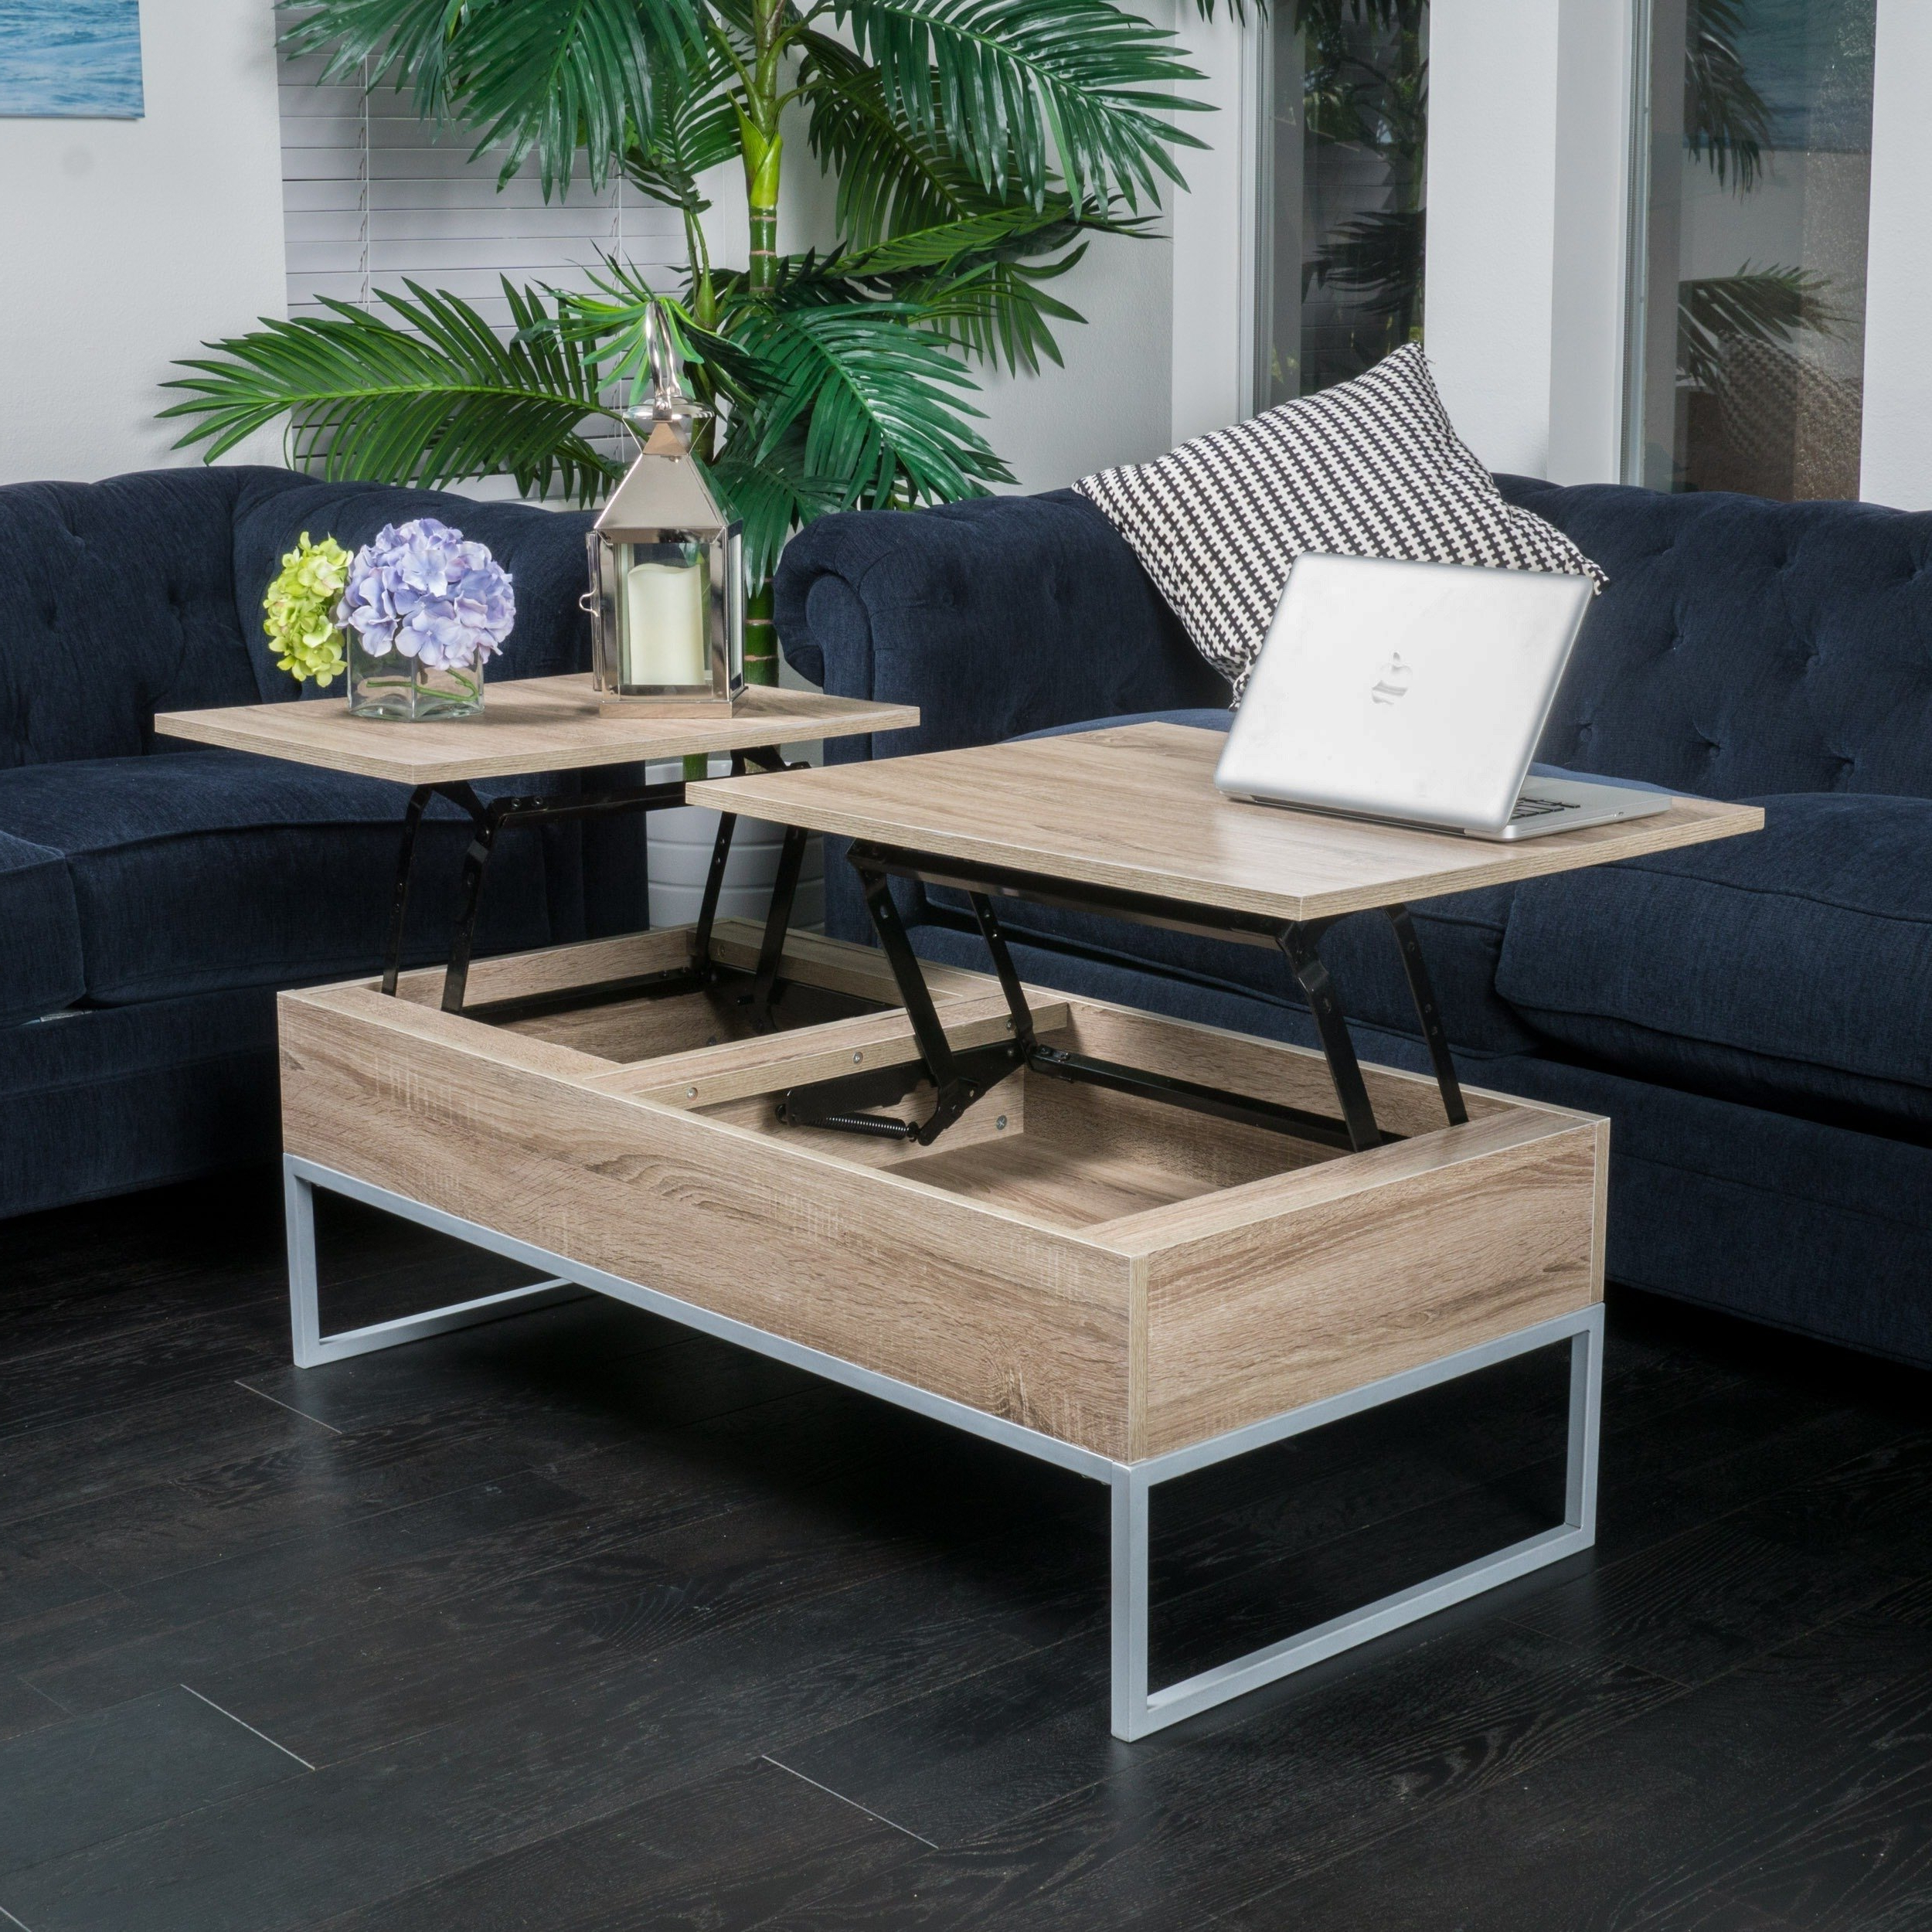 Preferred Grant Lift Top Cocktail Tables With Casters Throughout Shop Christopher Knight Home Lift Top Wood Storage Coffee Table – On (Gallery 7 of 20)